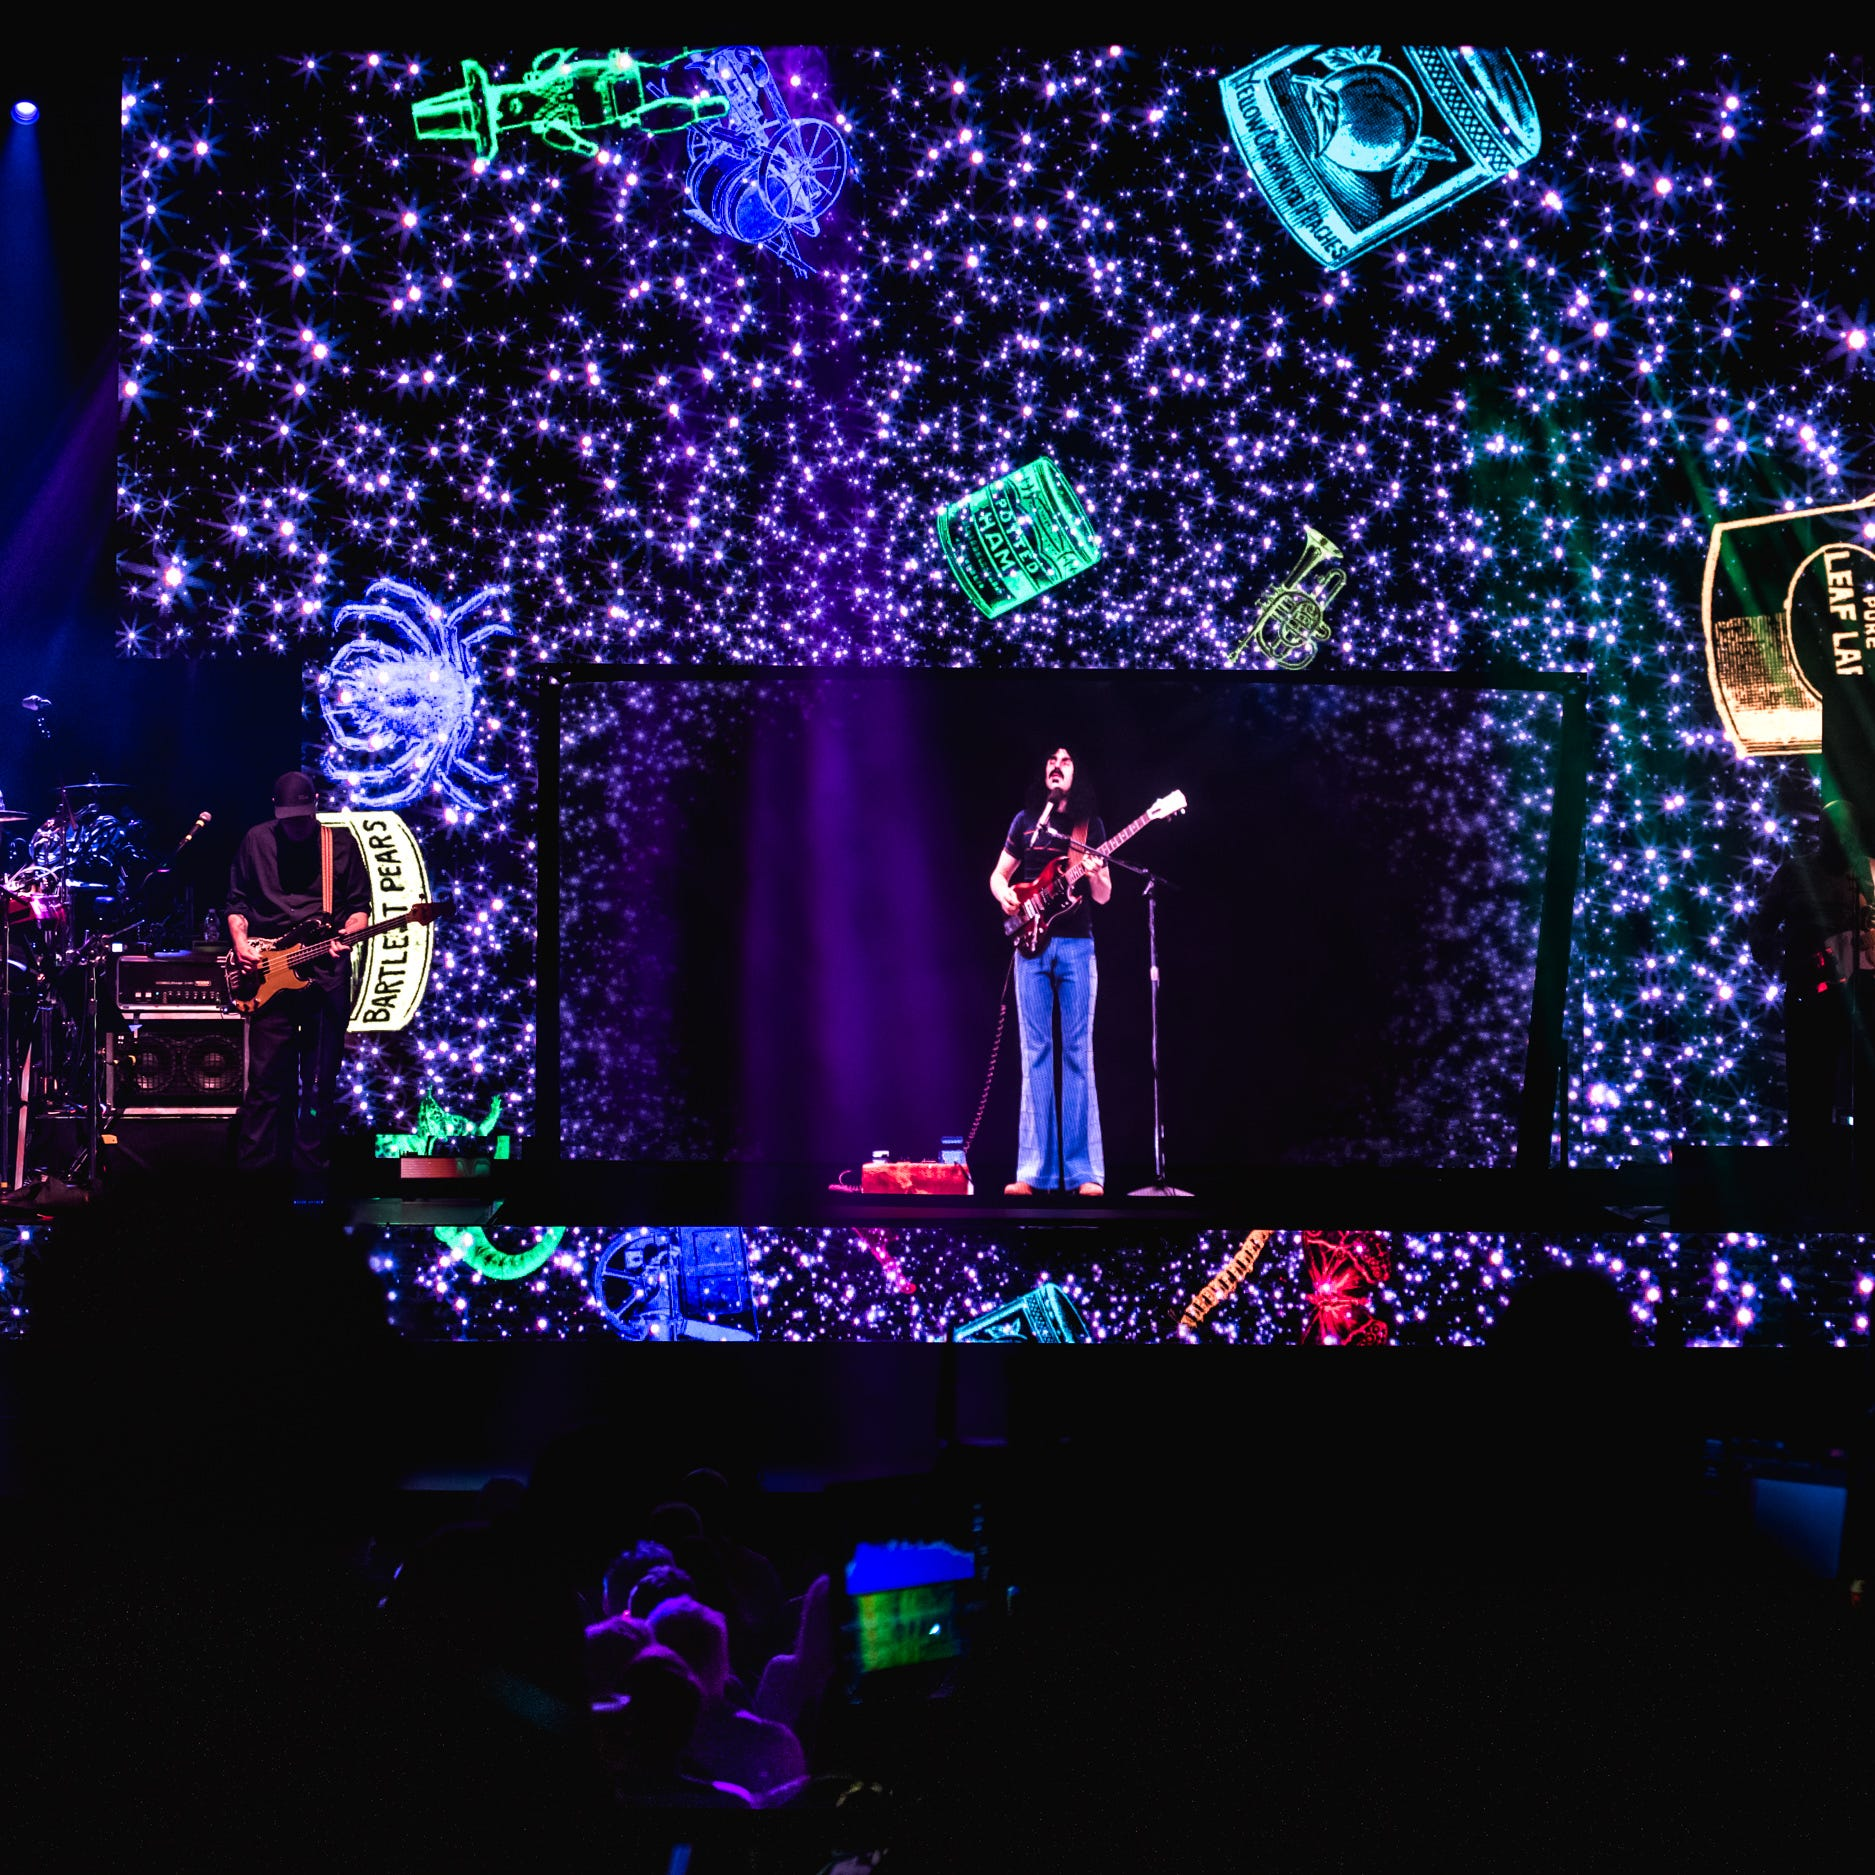 Frank Zappa hologram tour brings Bizarre World to NJ